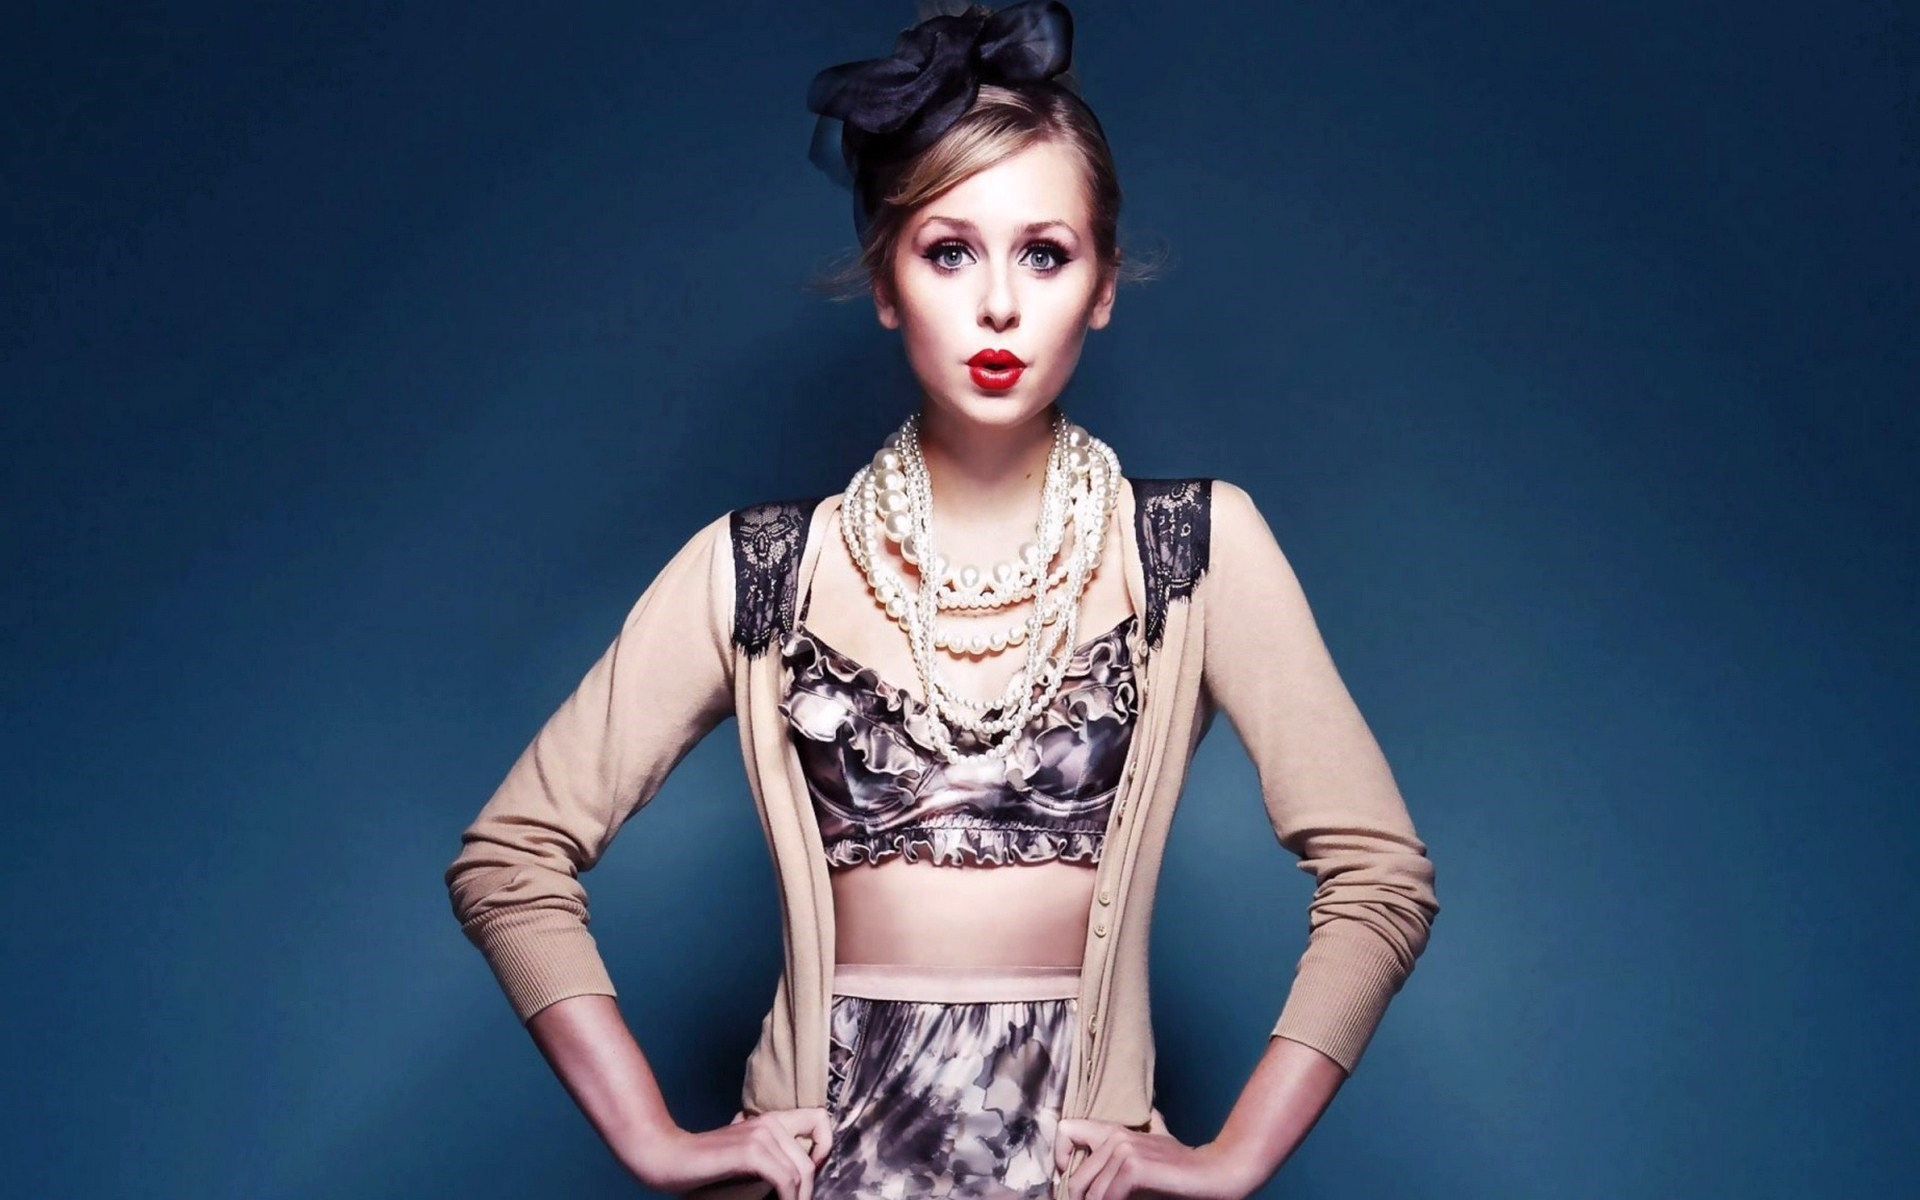 Related For Diana Vickers Celebrity Girl. Diana Vickers